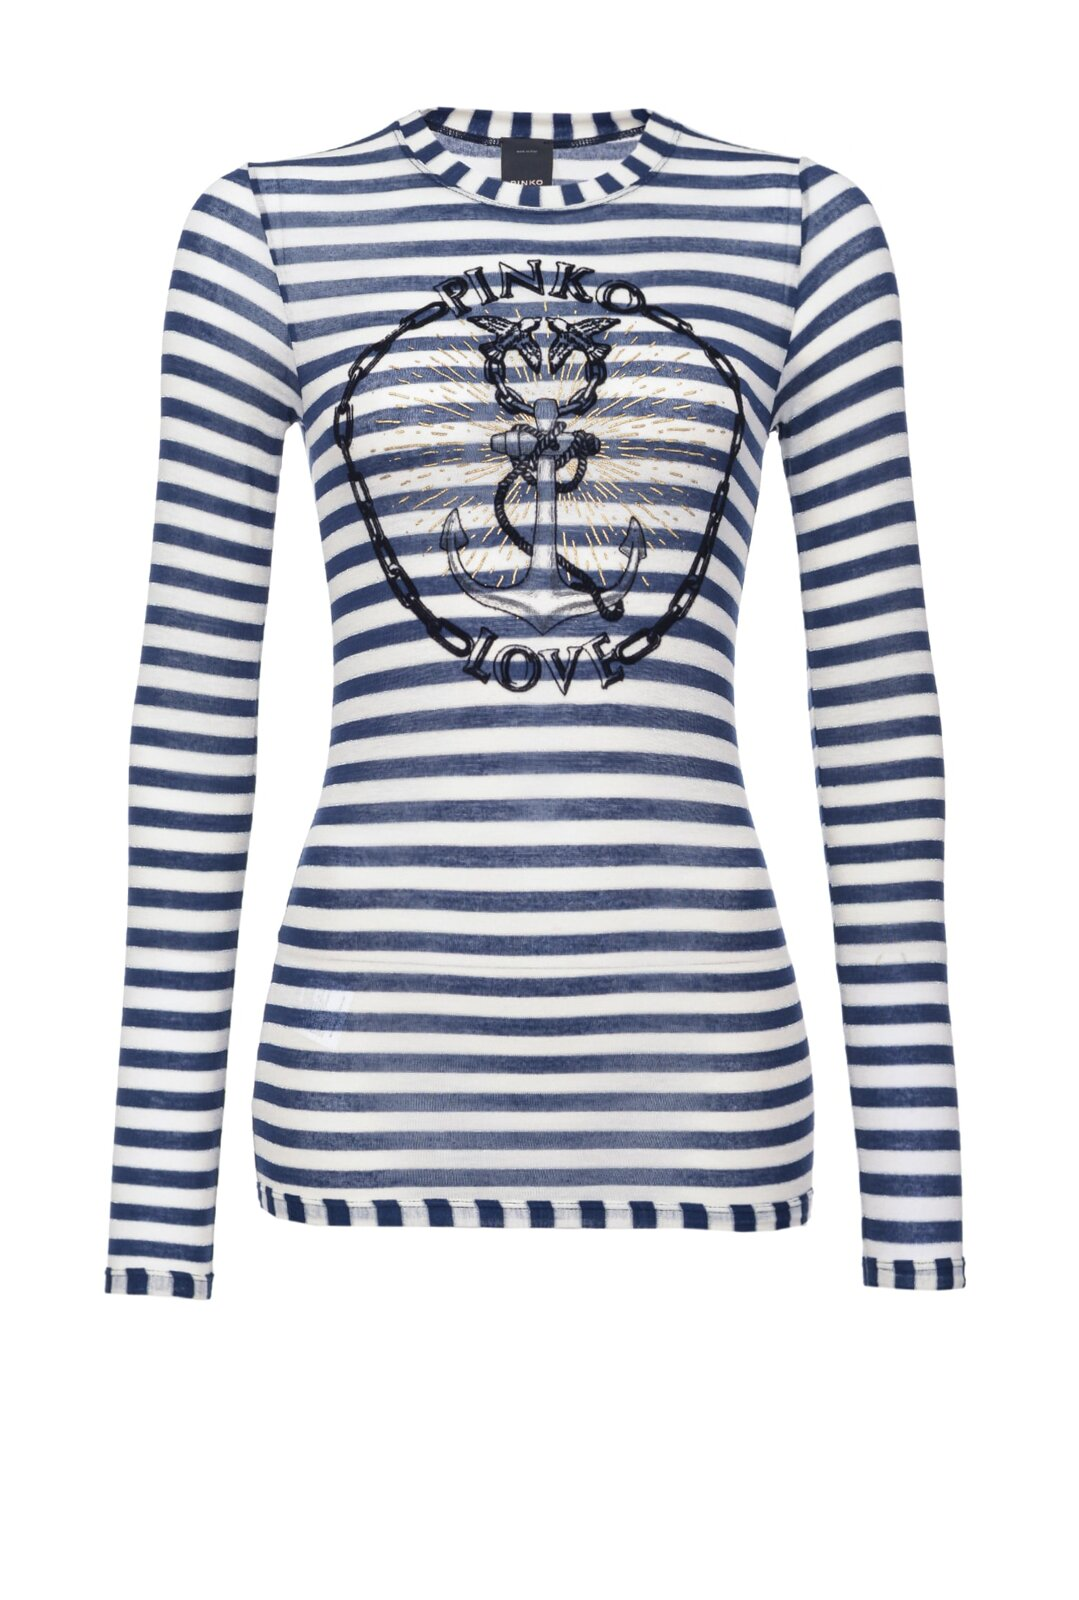 Striped Pinko Love Sweater With Anchor - Pinko